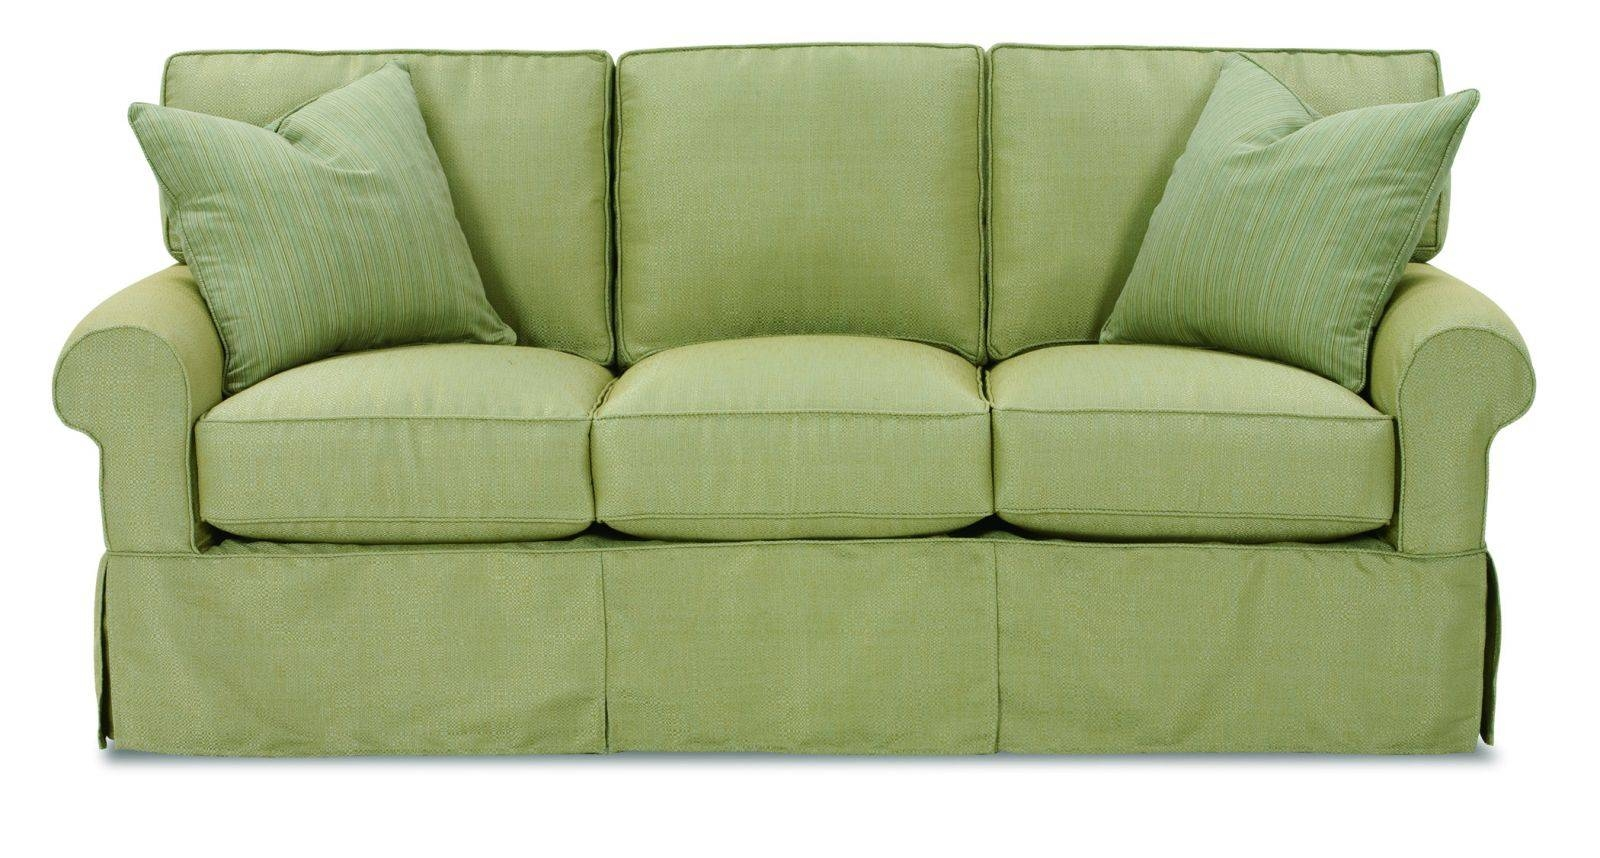 Inspiration Idea Green Sofa Slipcover With Sage Green Loden within Green Sofa Chairs (Image 20 of 30)